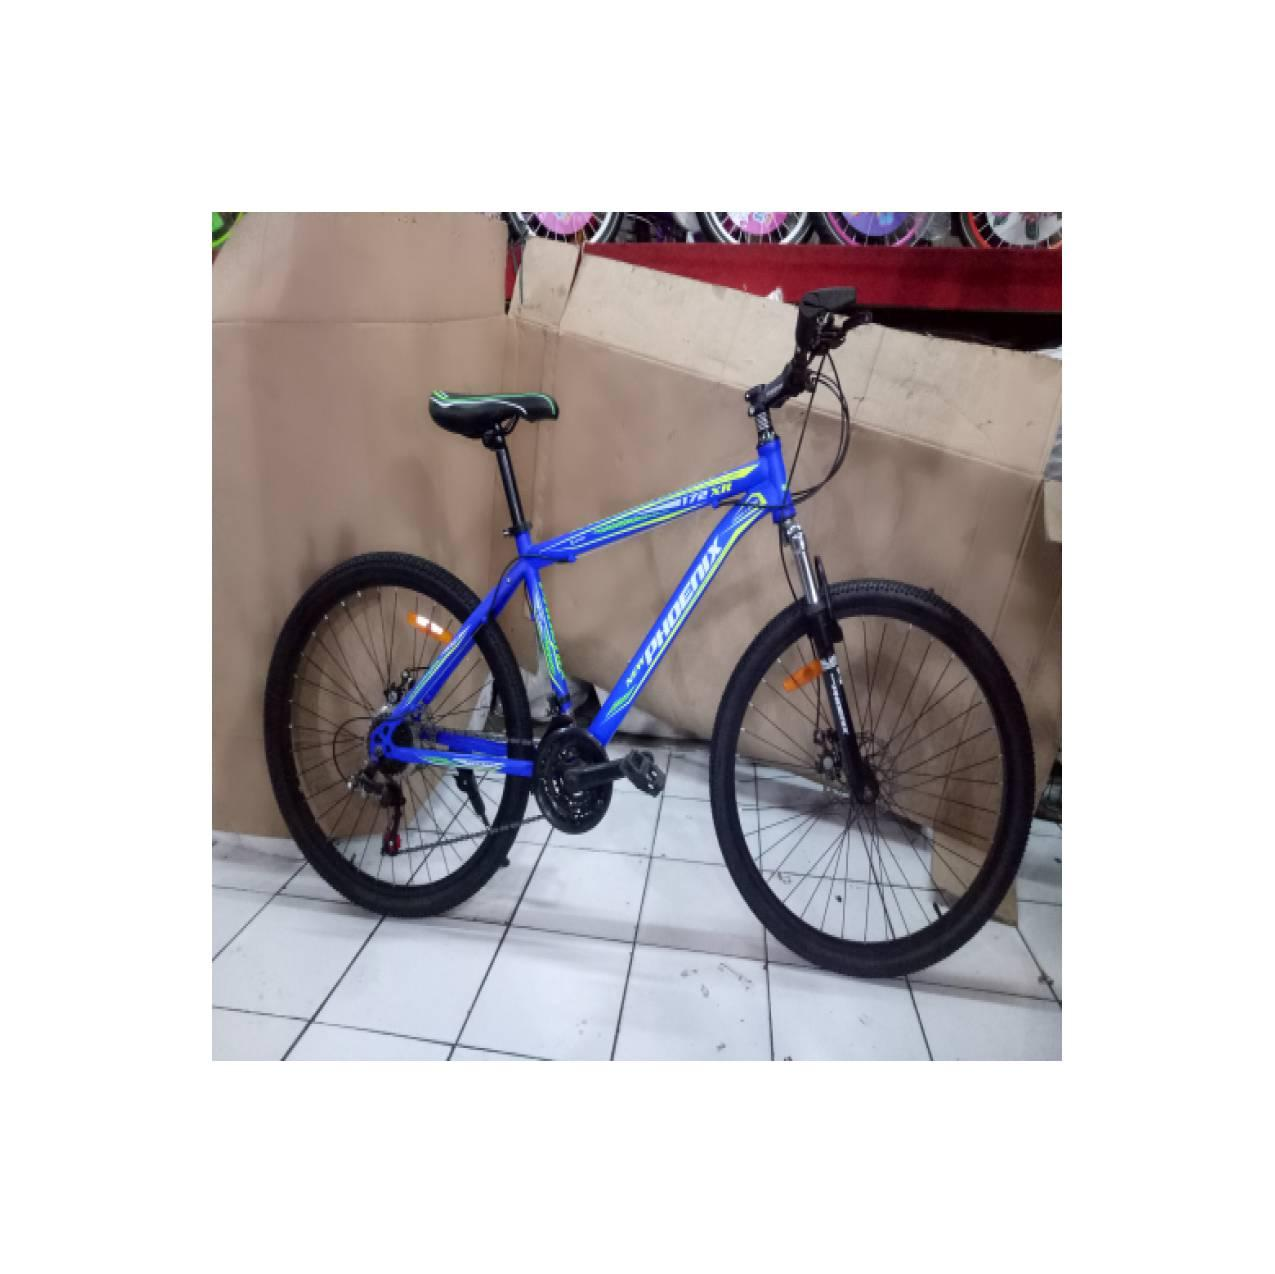 sepeda gunung/ mtb 26 phoenix 172 xr 21 speed f/r brake:rem disc